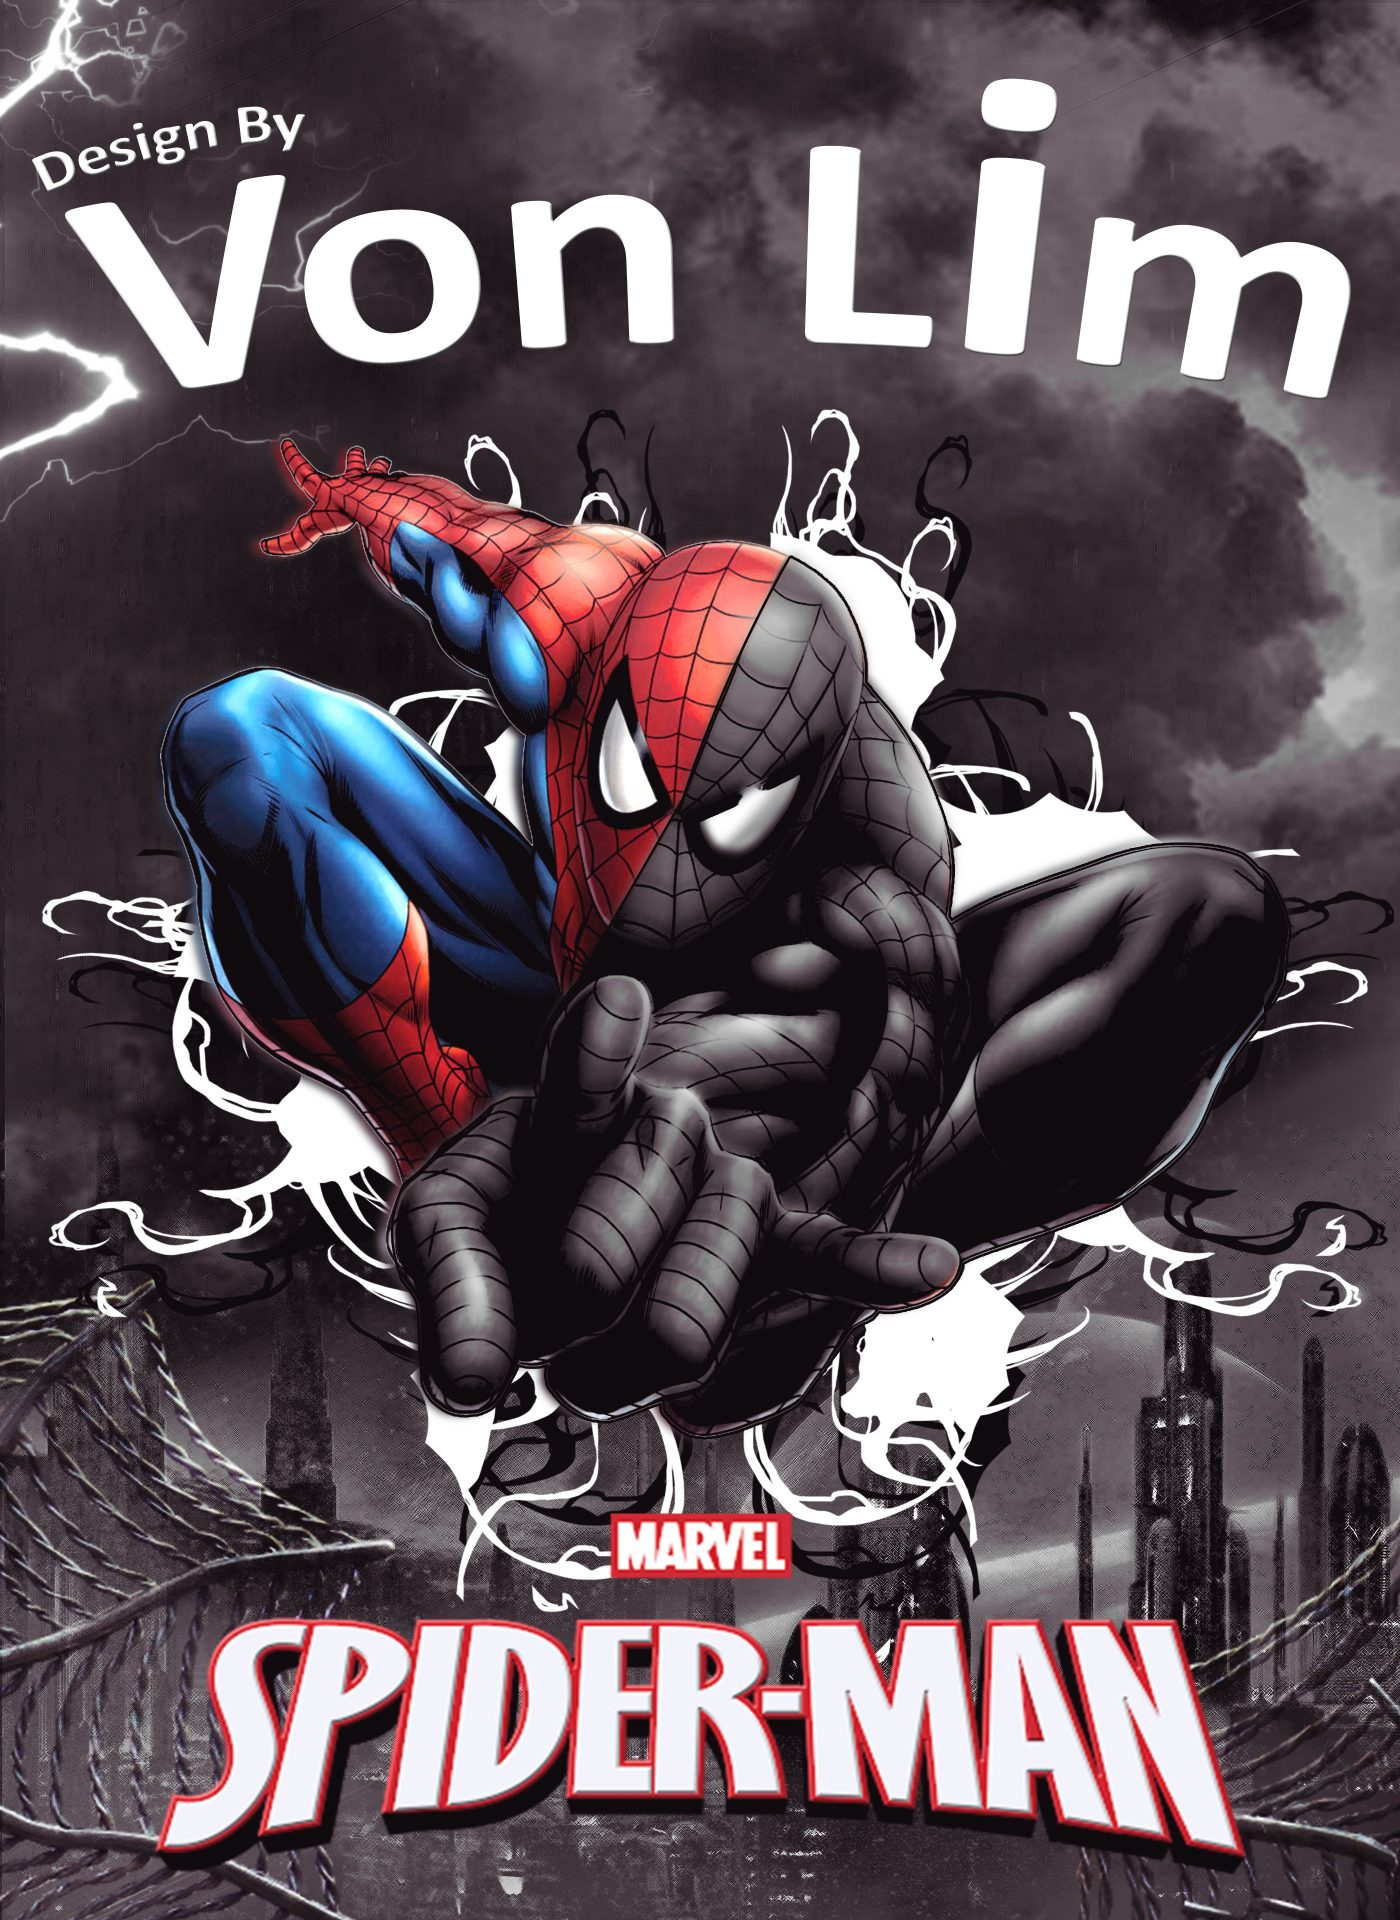 Spiderman-Vps-Artwork-VonLim-VonProduction-MyVpsGroup